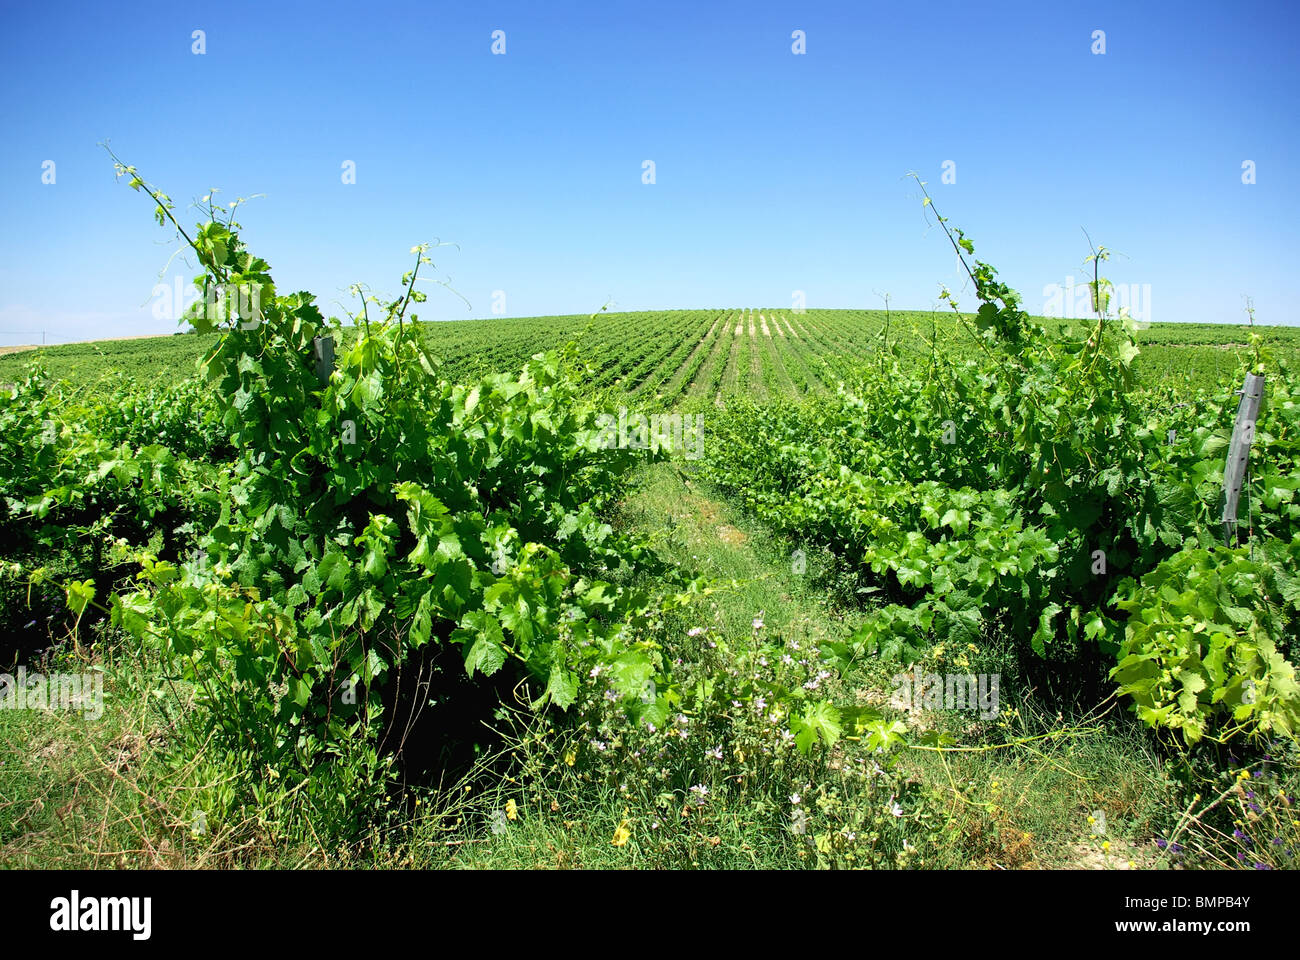 Green vineyard at Portugal. - Stock Image